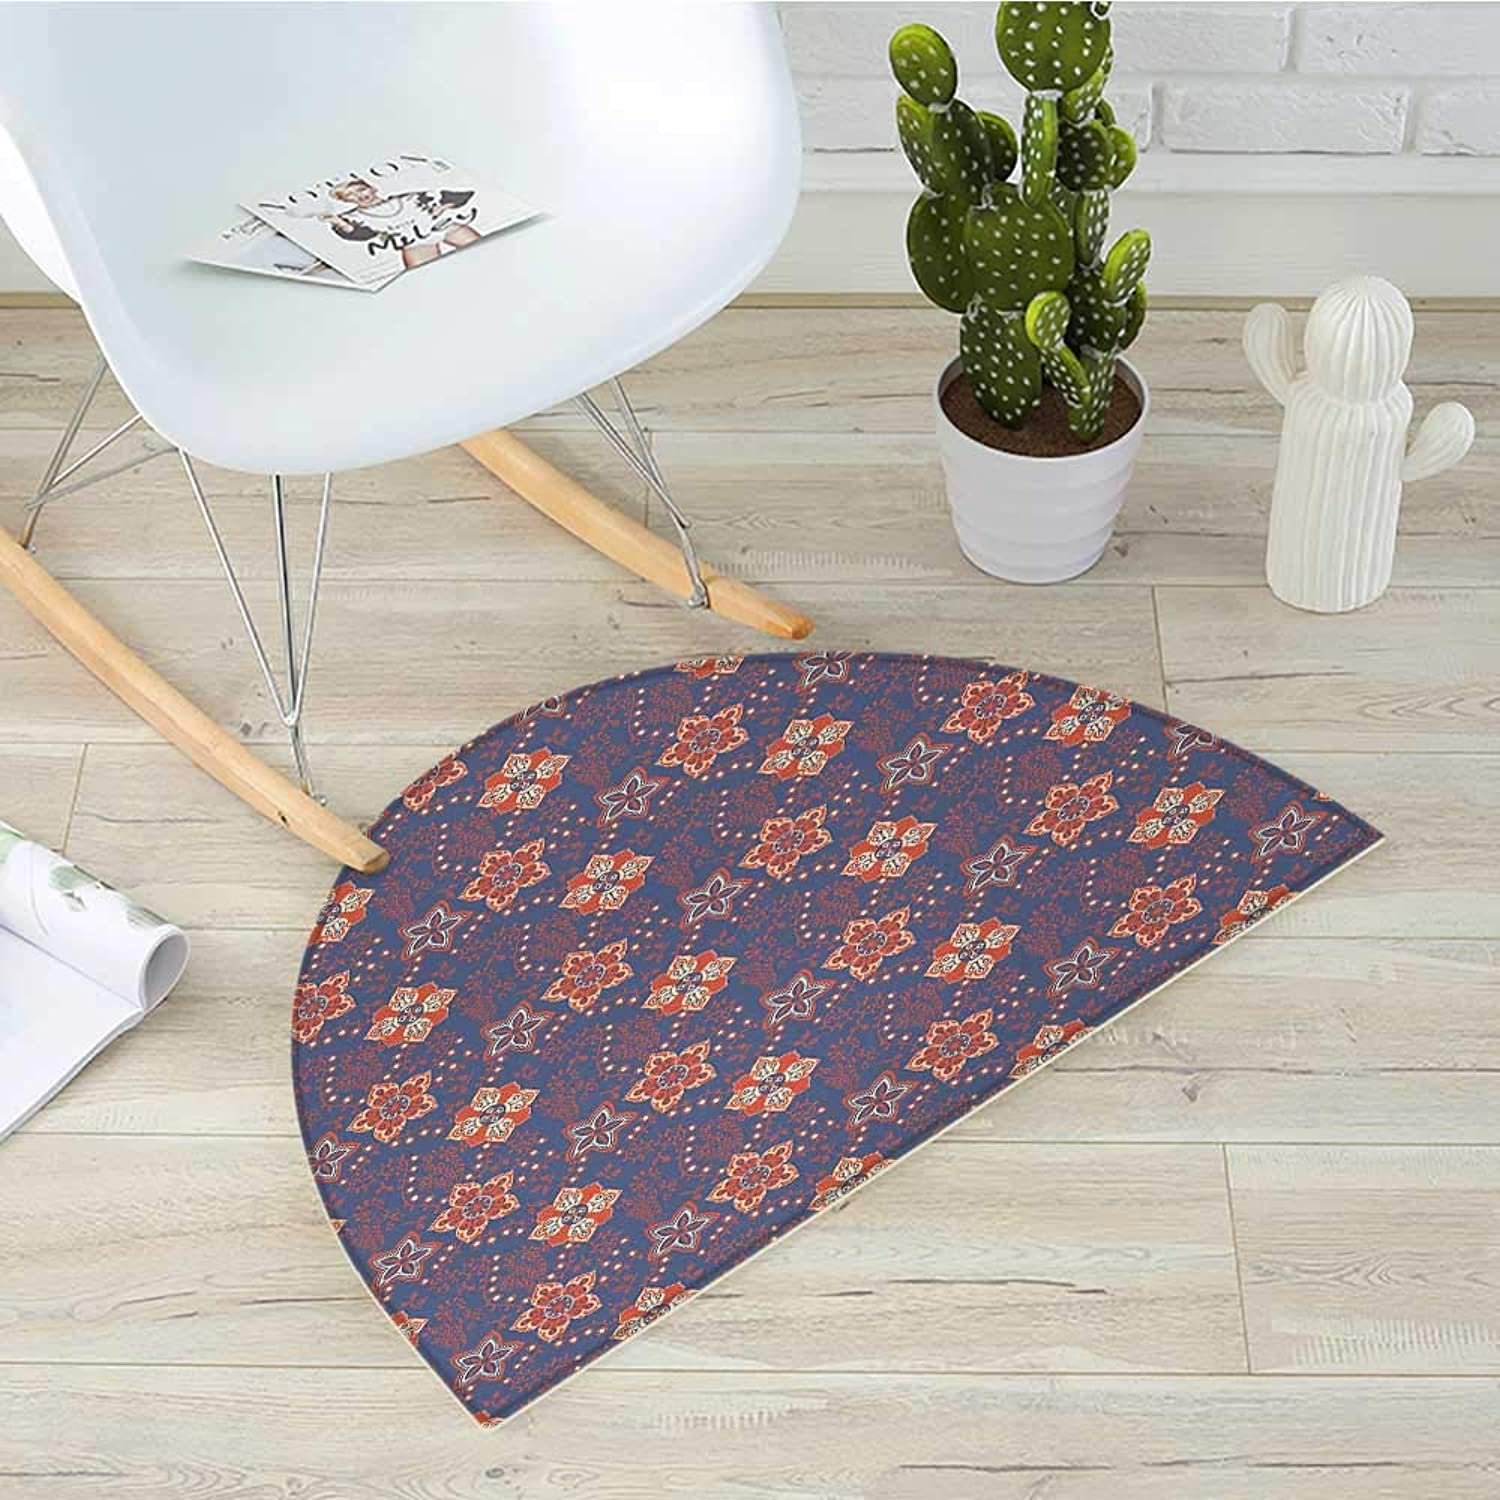 Floral Semicircle Doormat Flower Scroll Pattern with Swirled Branches Leaves and Blossoms Persian Halfmoon doormats H 43.3  xD 64.9  Cadet bluee orange Cream